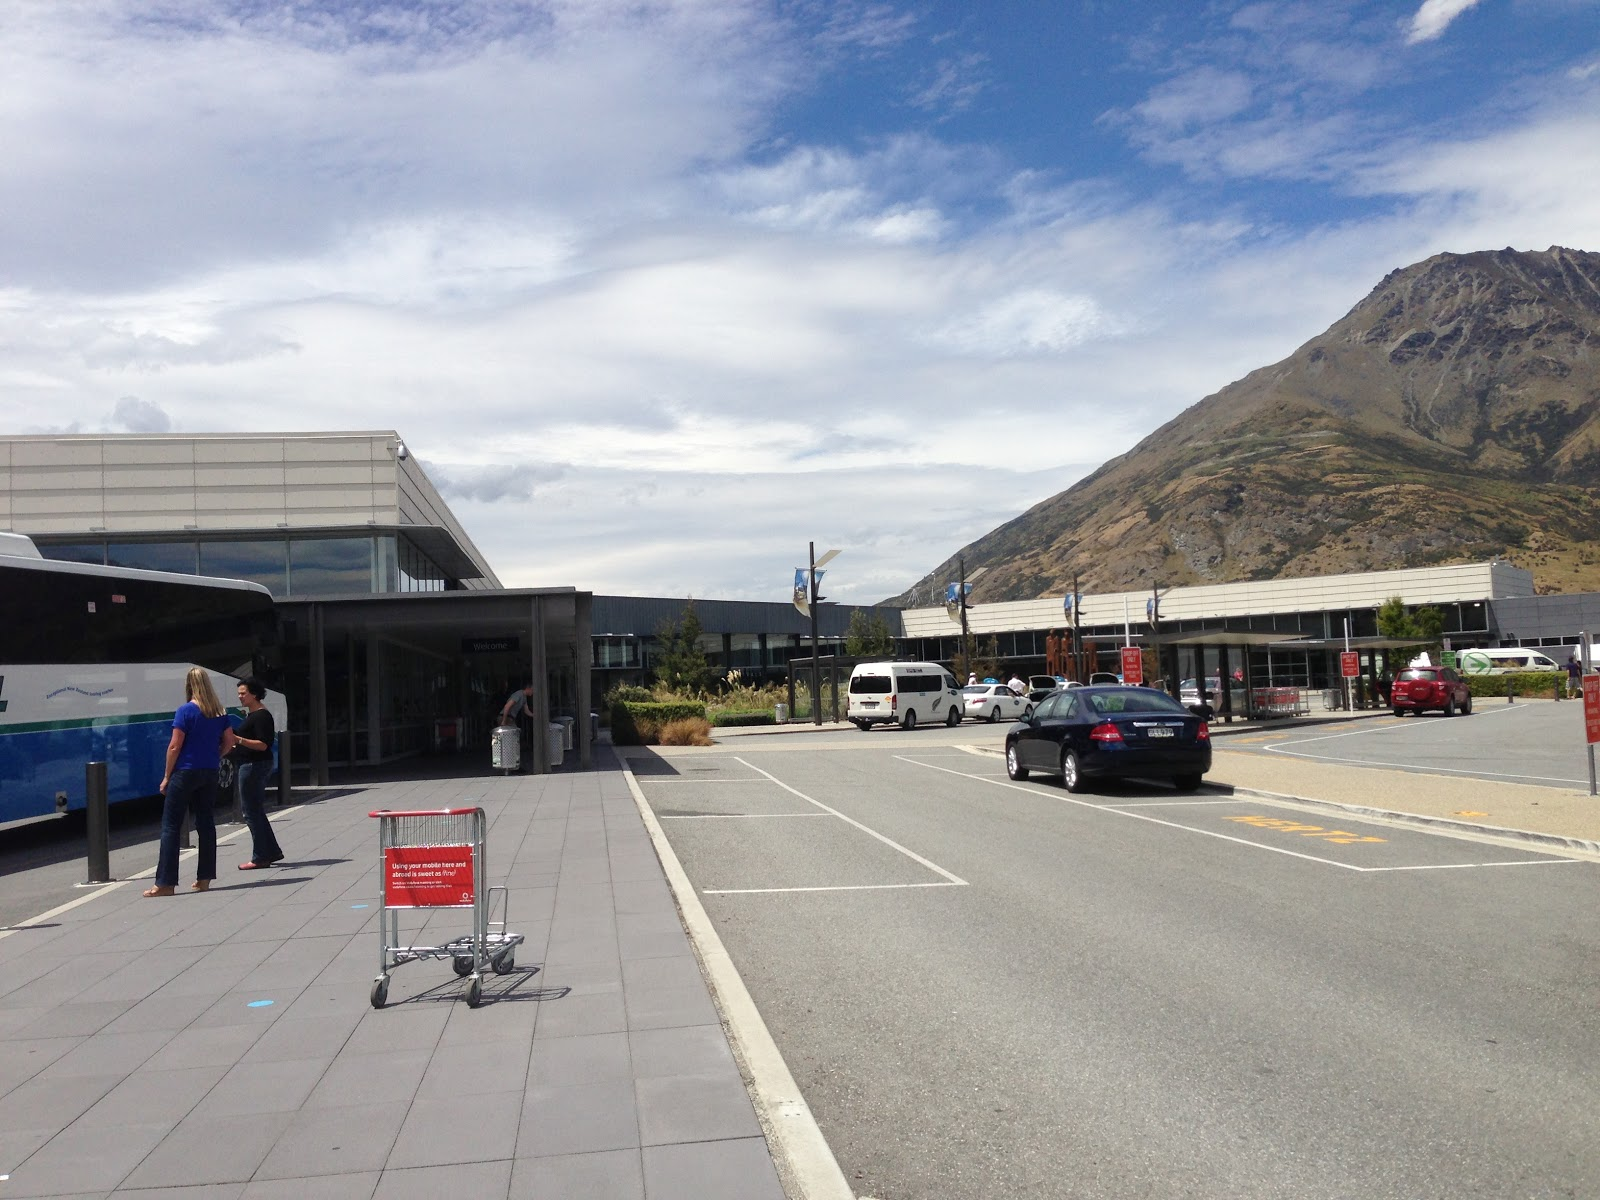 queenstown airport arrivals from sydney - photo#19